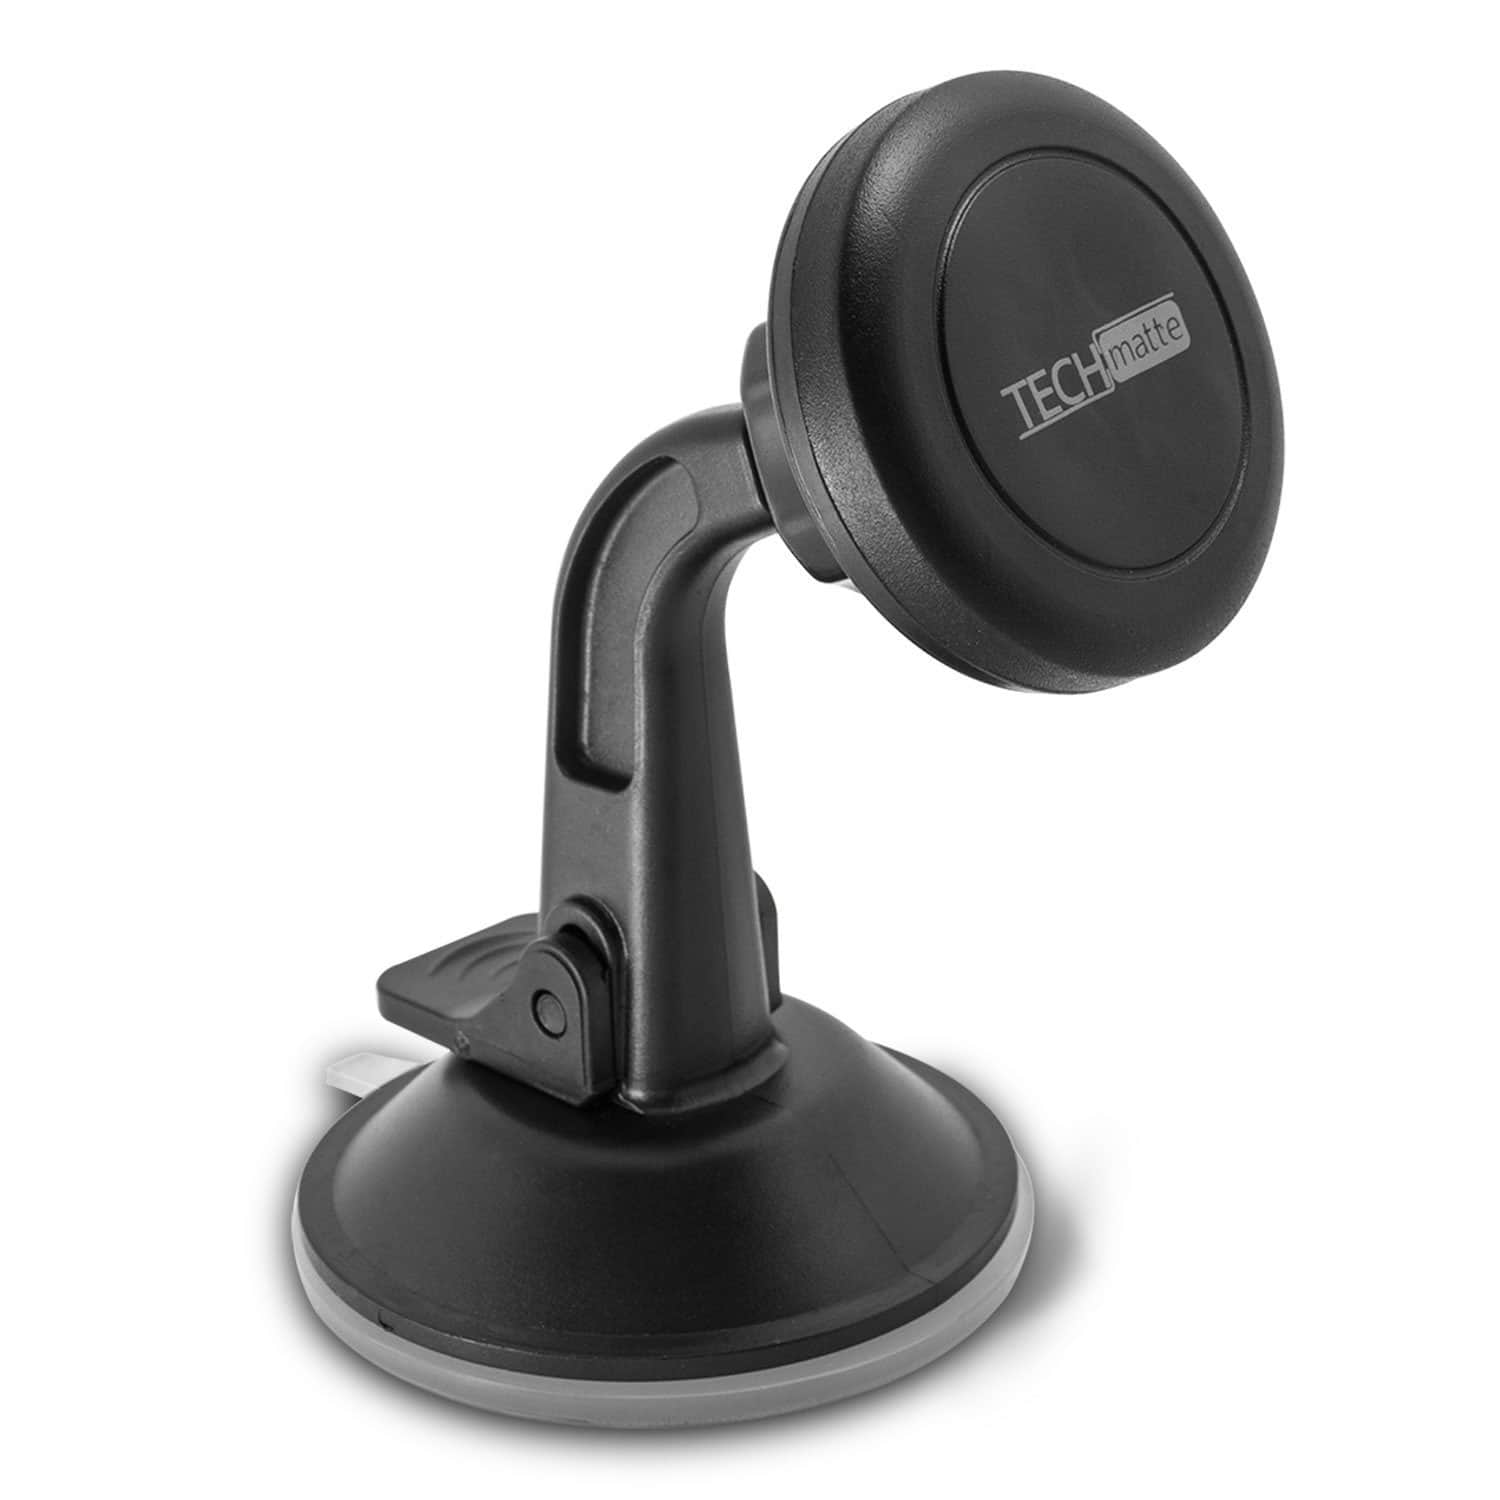 TechMatte MagGrip Dashboard and Windshield Magnetic Universal Car Mount Holder for Smartphones including iPhone X, 8, 7, 6, 6S, Galaxy S8, S7, S7 Edge $7.99